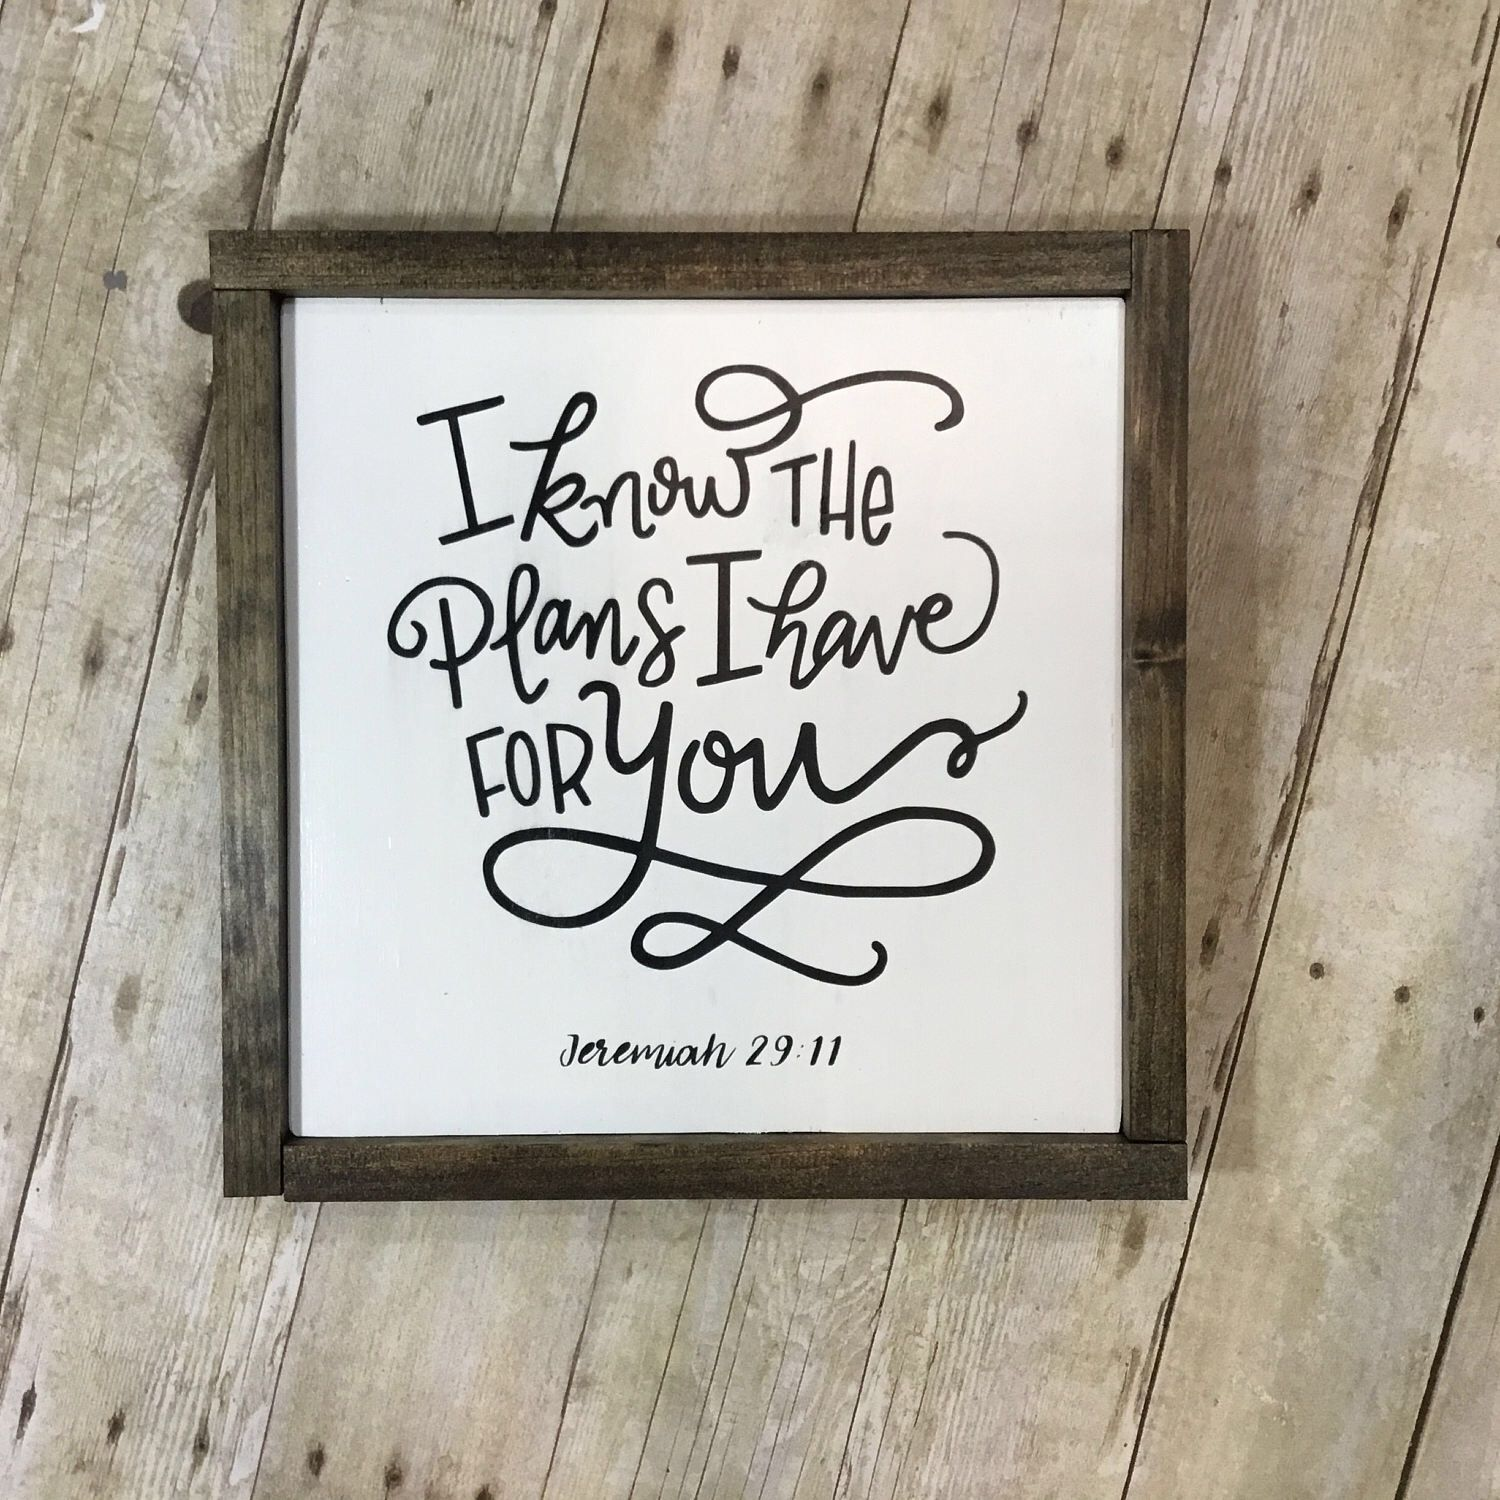 I know the plans i have for you - Jeremiah 29:11 - bible verse - wood sign - wall decor - hand painted - gallery wall by LetteredByStephanie on Etsy https://www.etsy.com/listing/510122606/i-know-the-plans-i-have-for-you-jeremiah